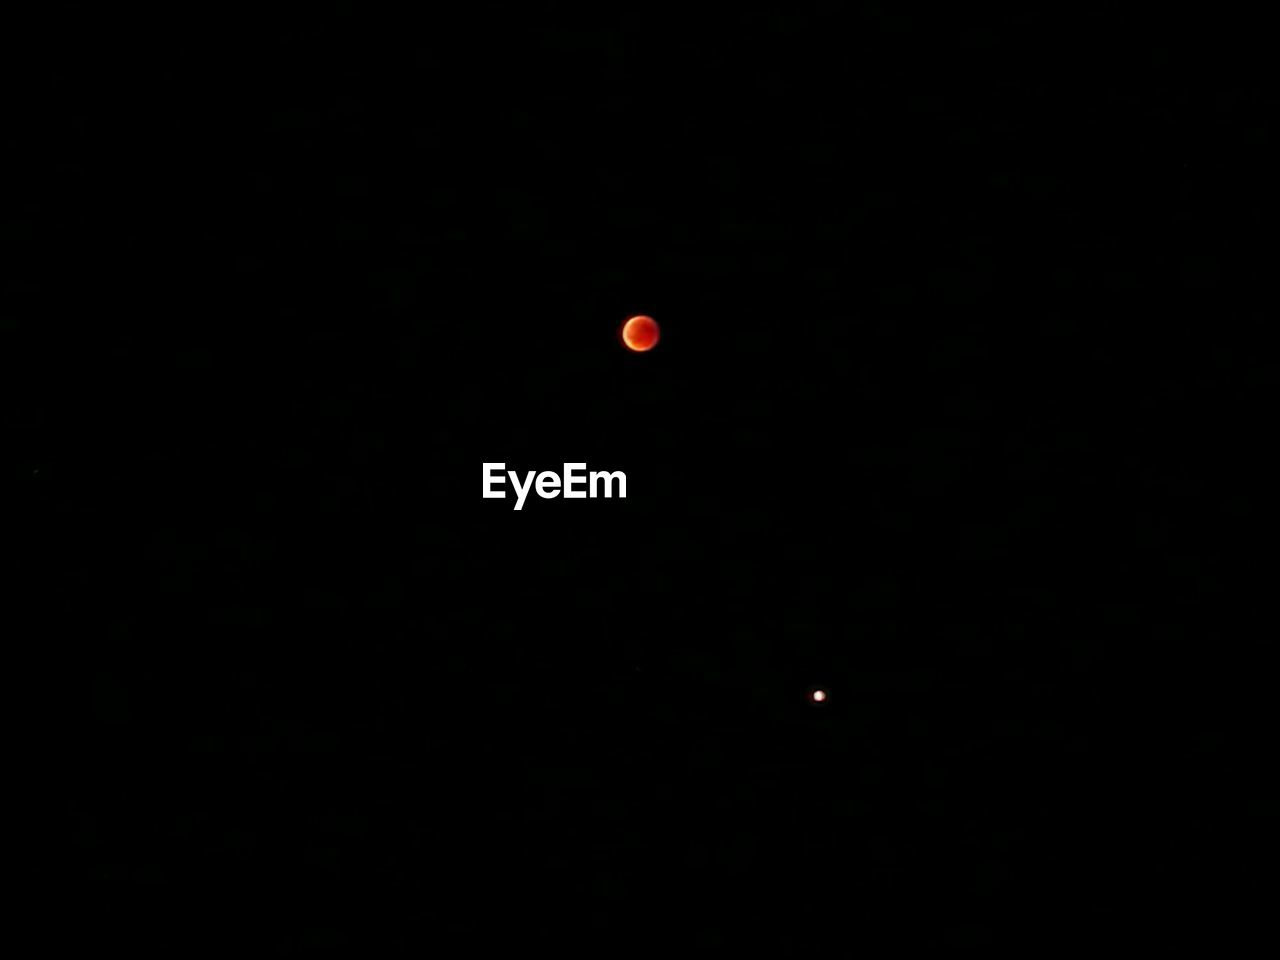 space, astronomy, no people, night, moon, copy space, sky, red, beauty in nature, nature, scenics - nature, outdoors, tranquility, tranquil scene, eclipse, dark, discovery, black color, clear sky, space exploration, planetary moon